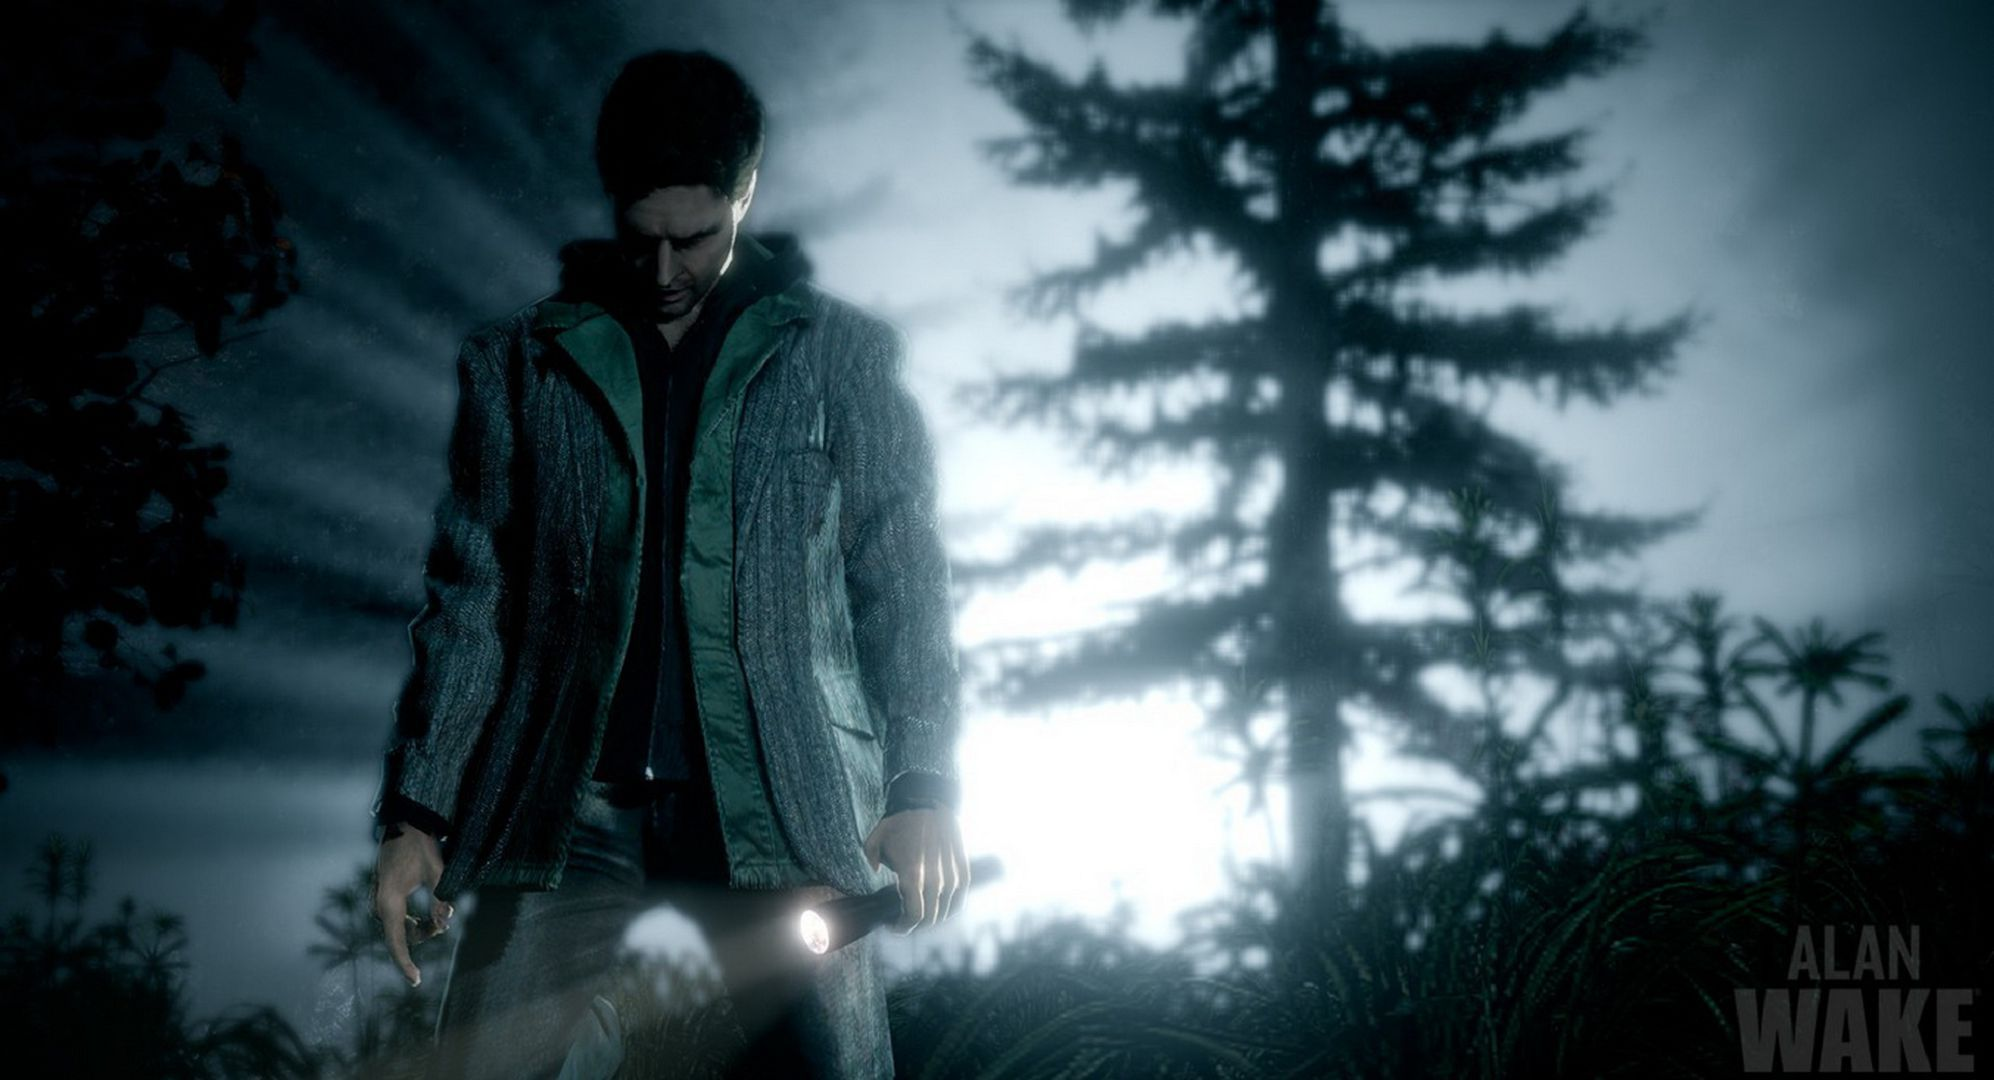 Alan Wake Wallpaper Pack